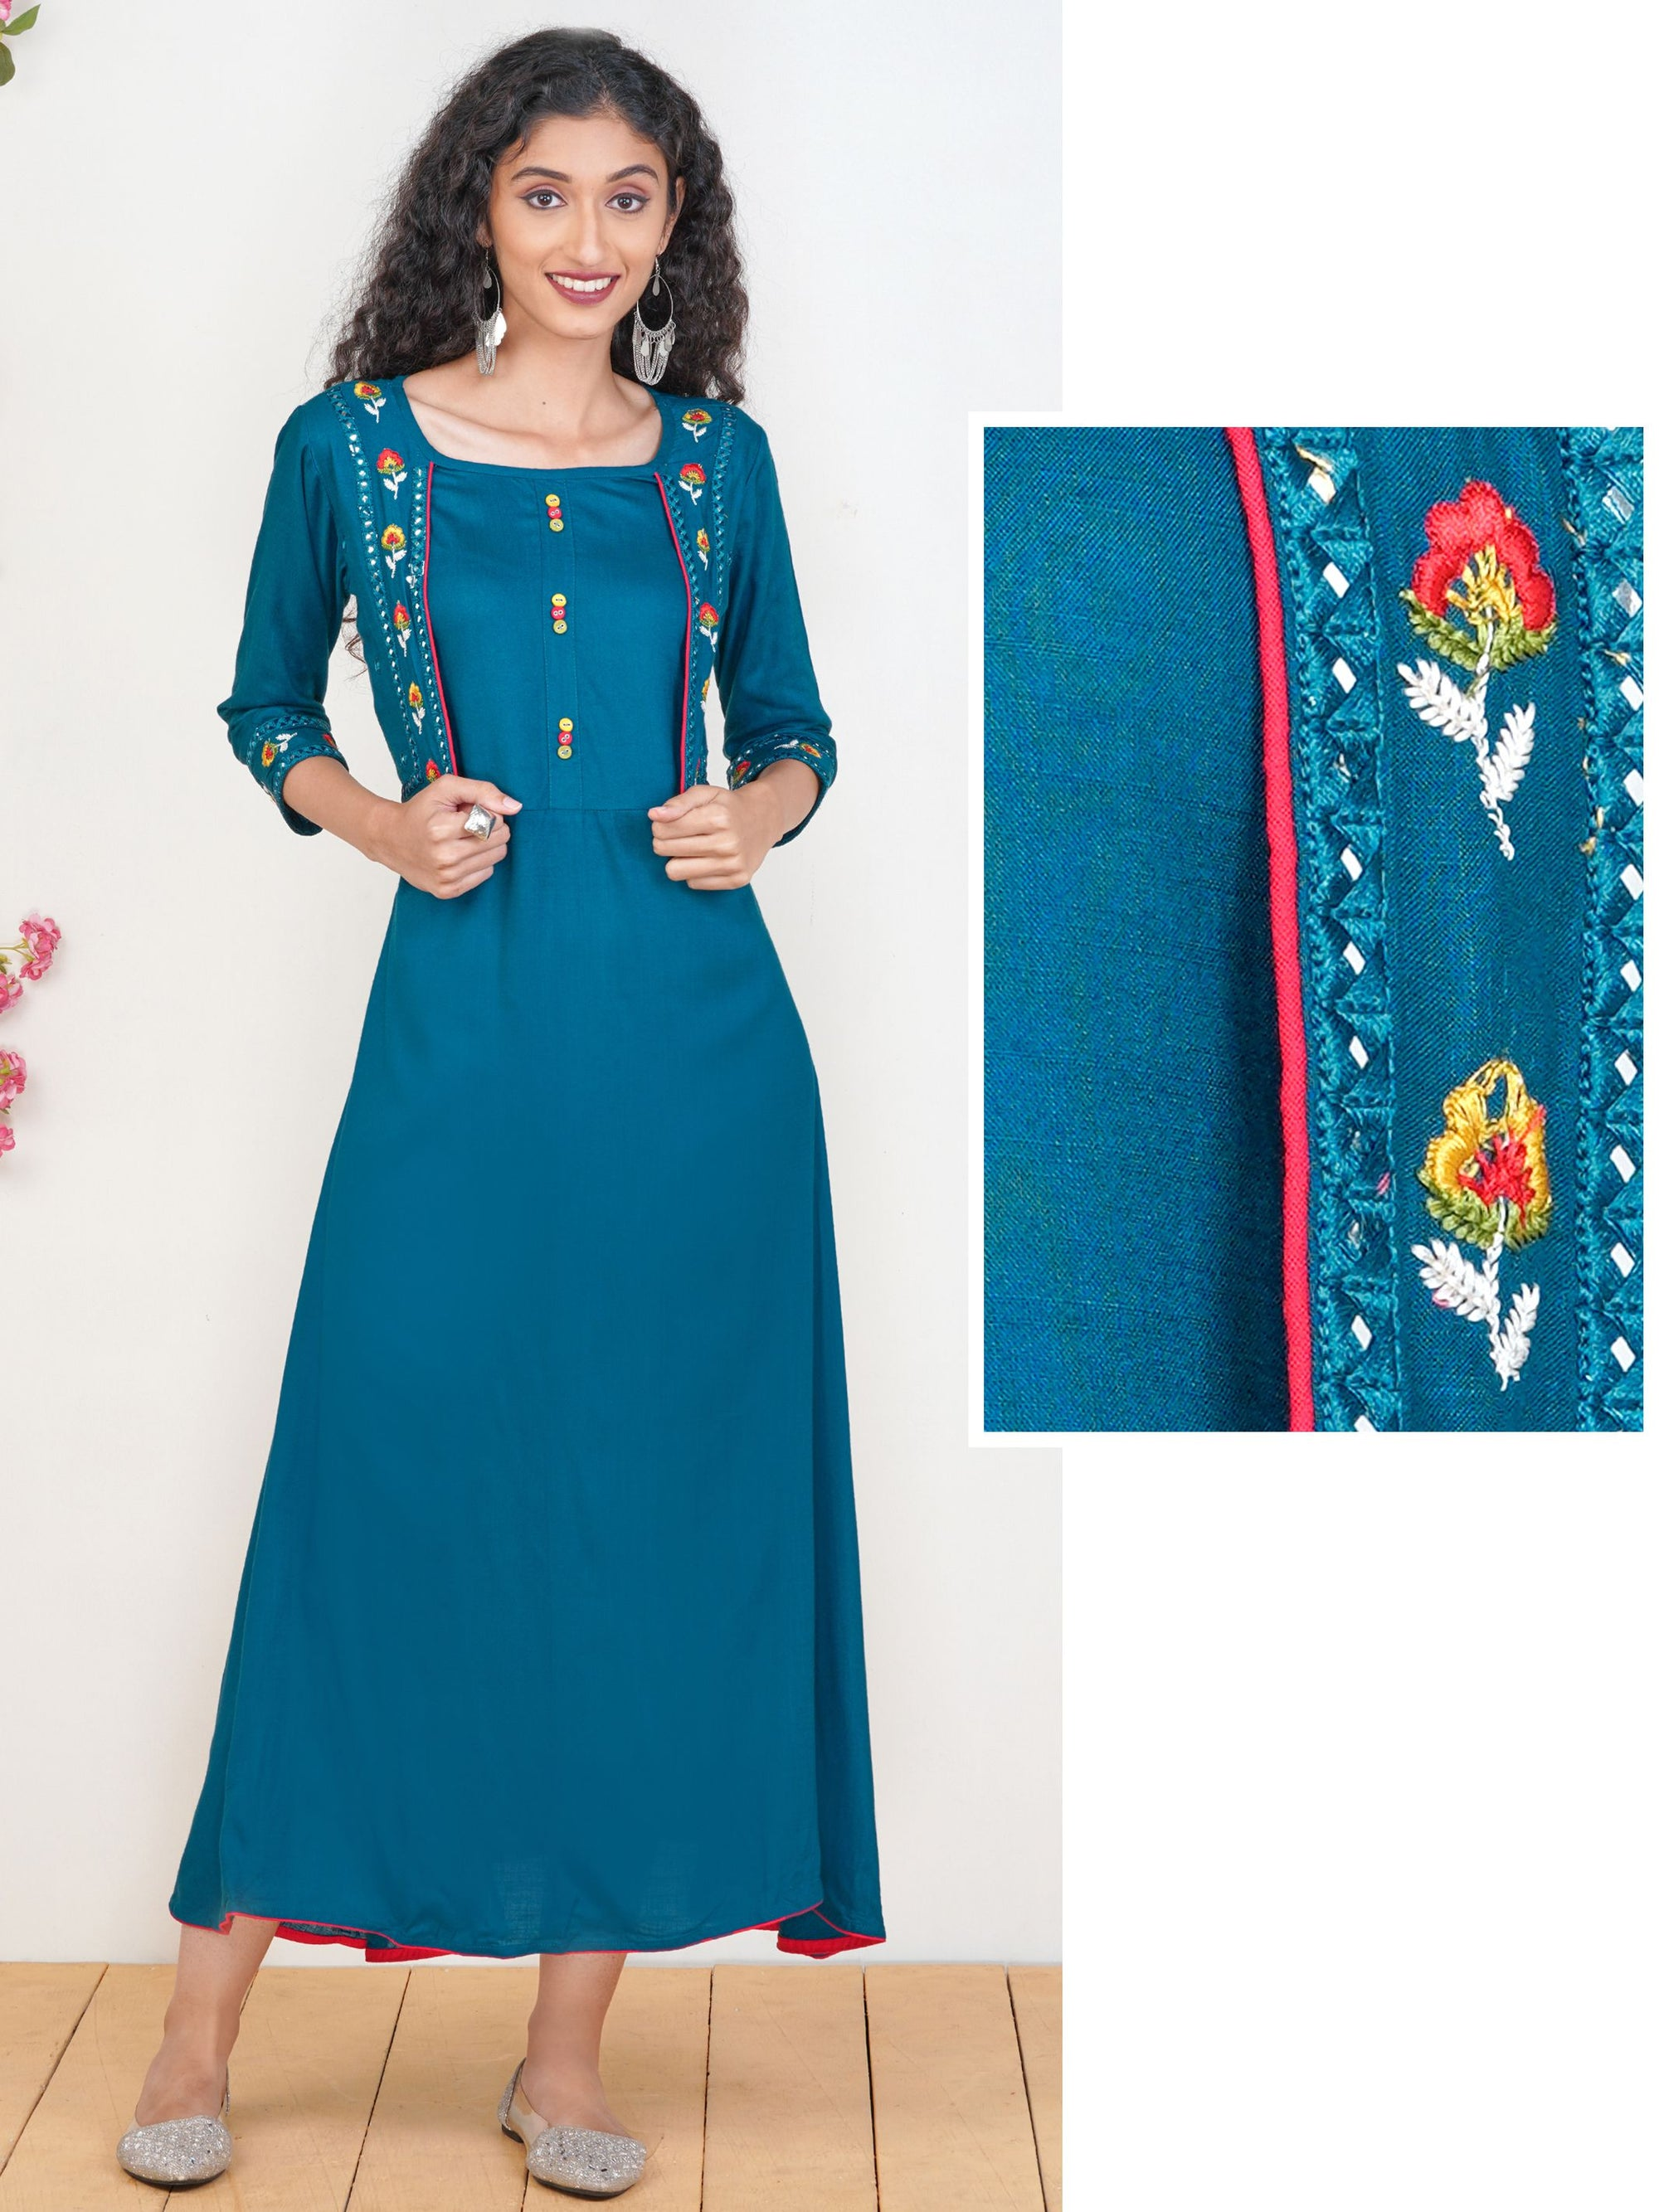 Foil Mirror work & Floral Embroidered Maxi – Teal Blue